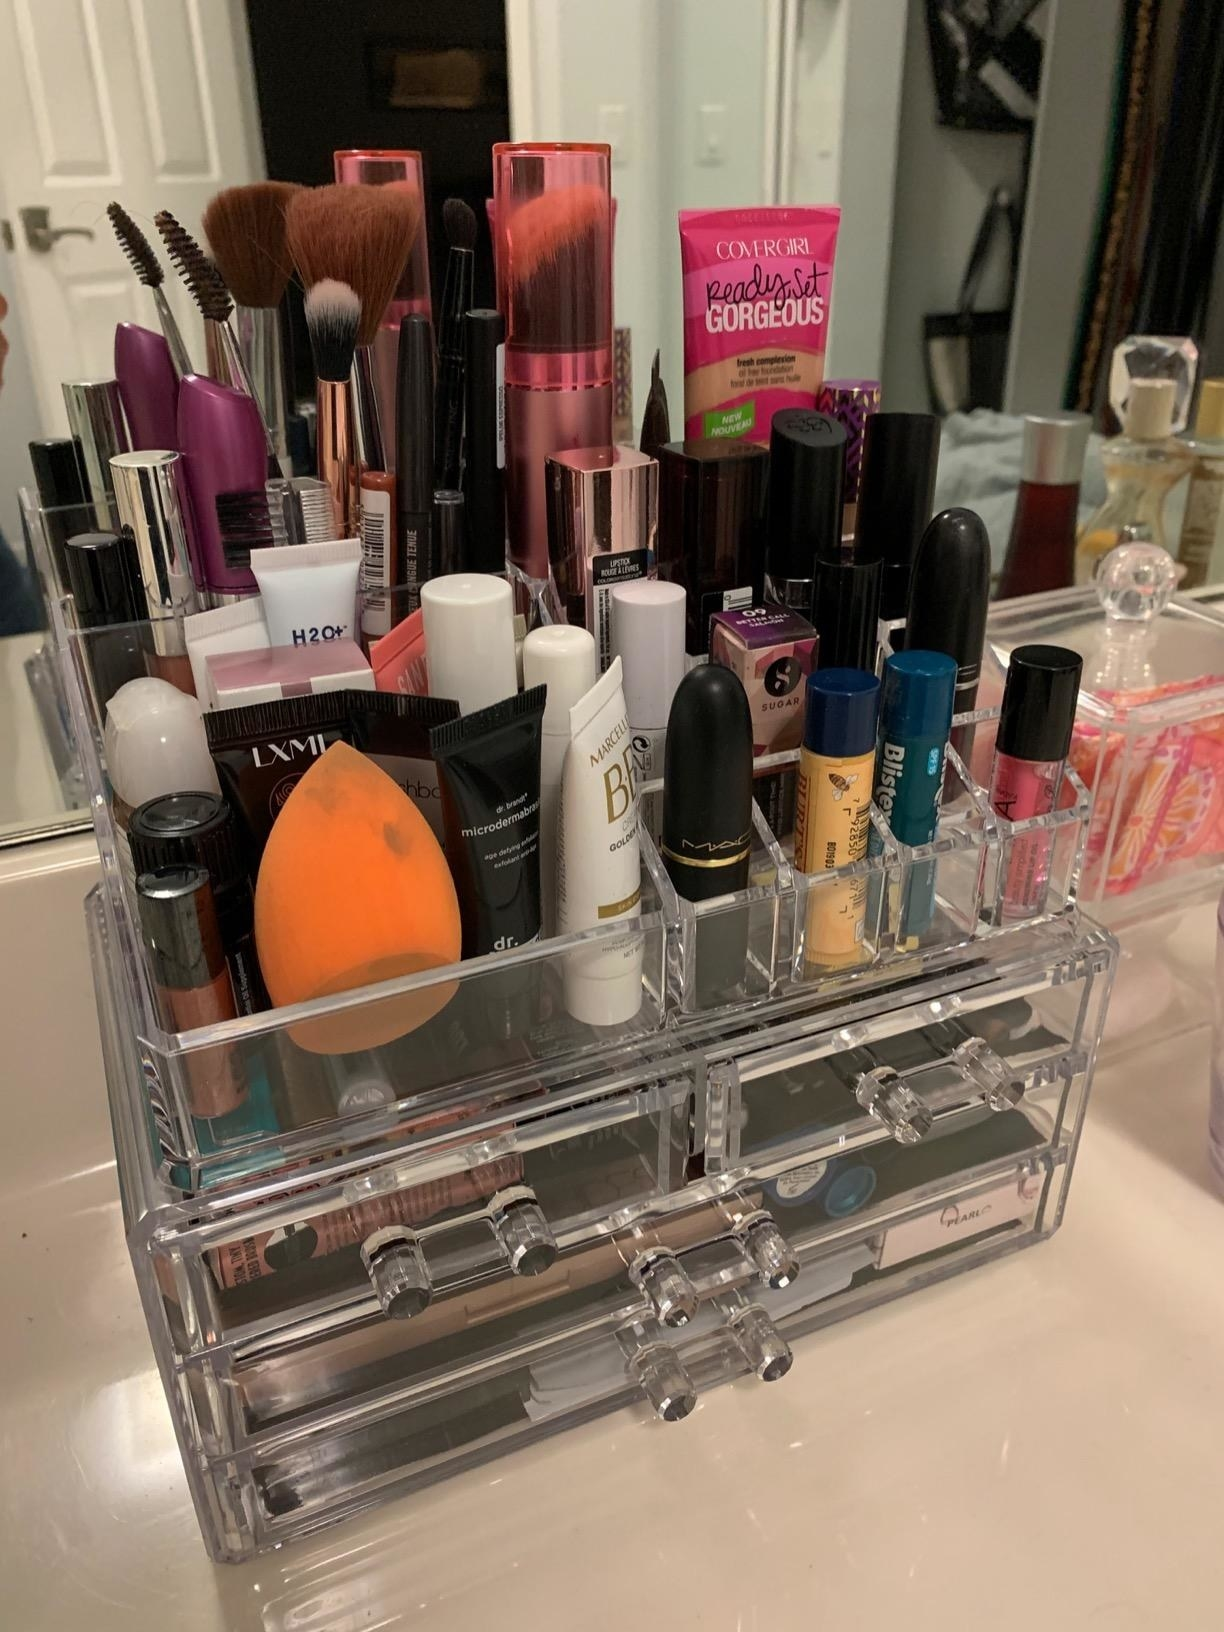 A clear acrylic plastic organizer filled with various make-up products